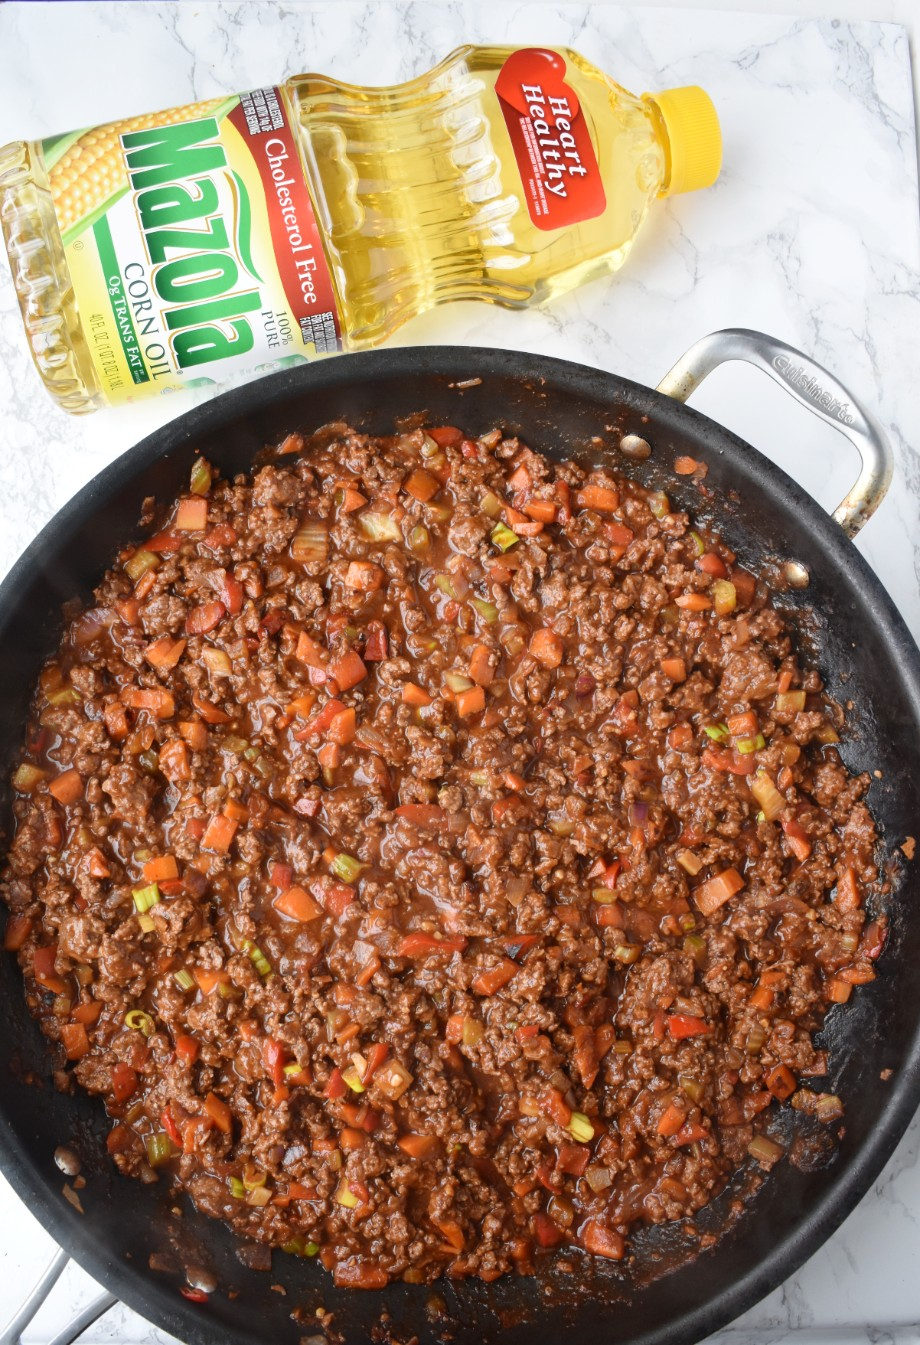 Pan of Asian Sloppy Joes